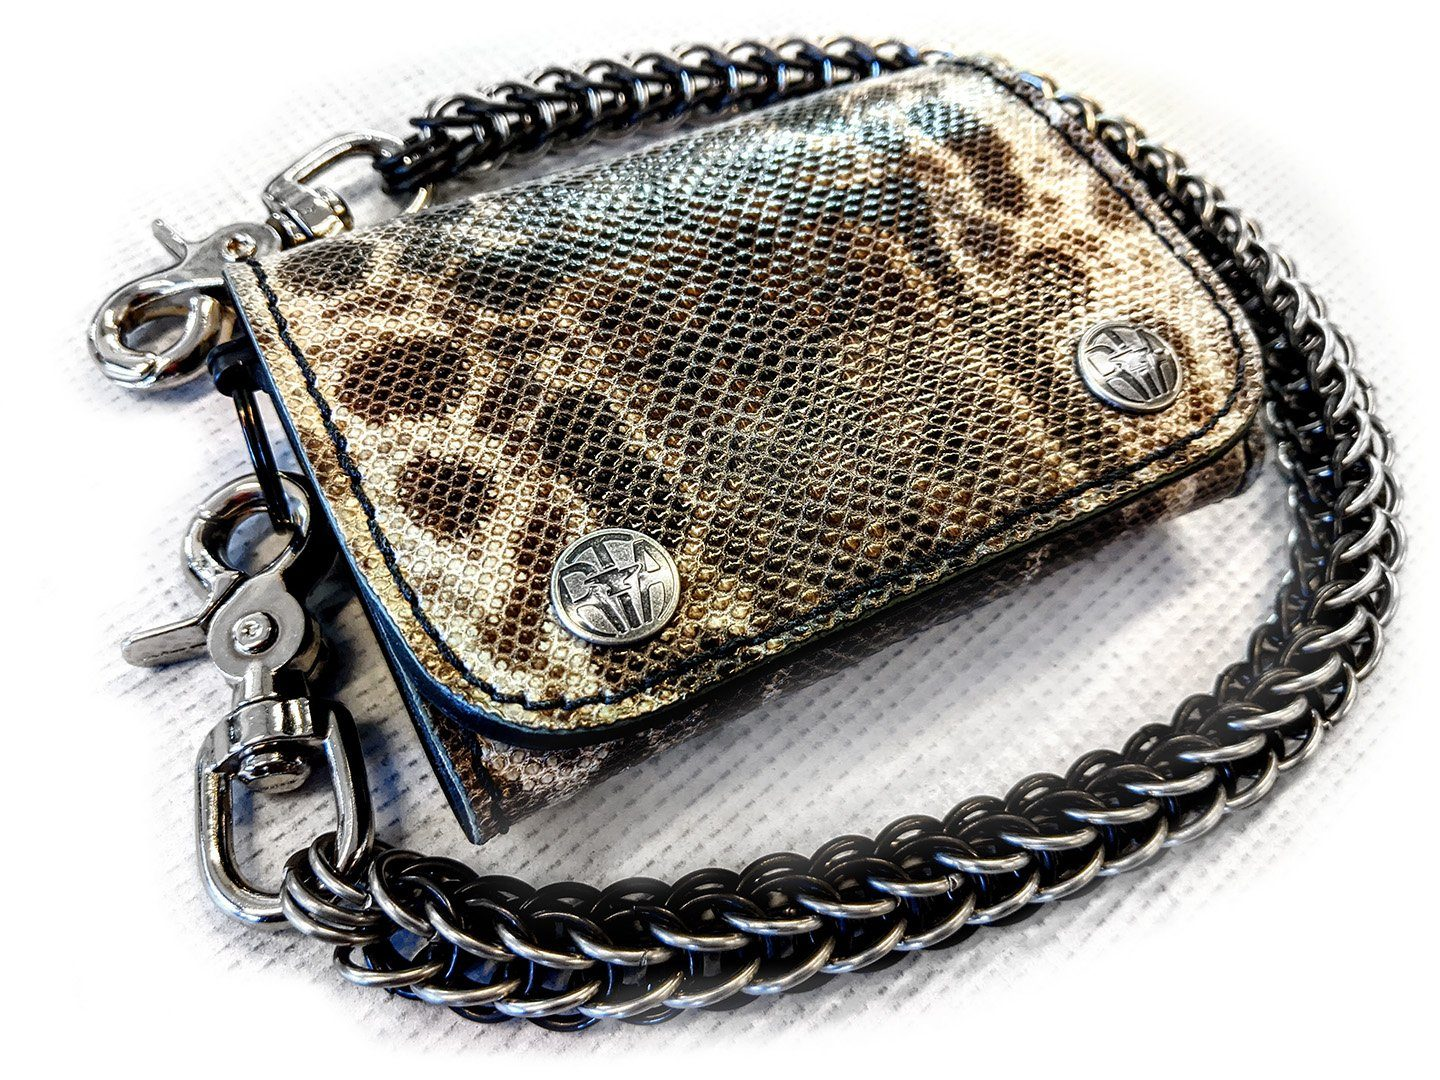 Trifold Leather Chain Wallet - Genuine Karung Snake